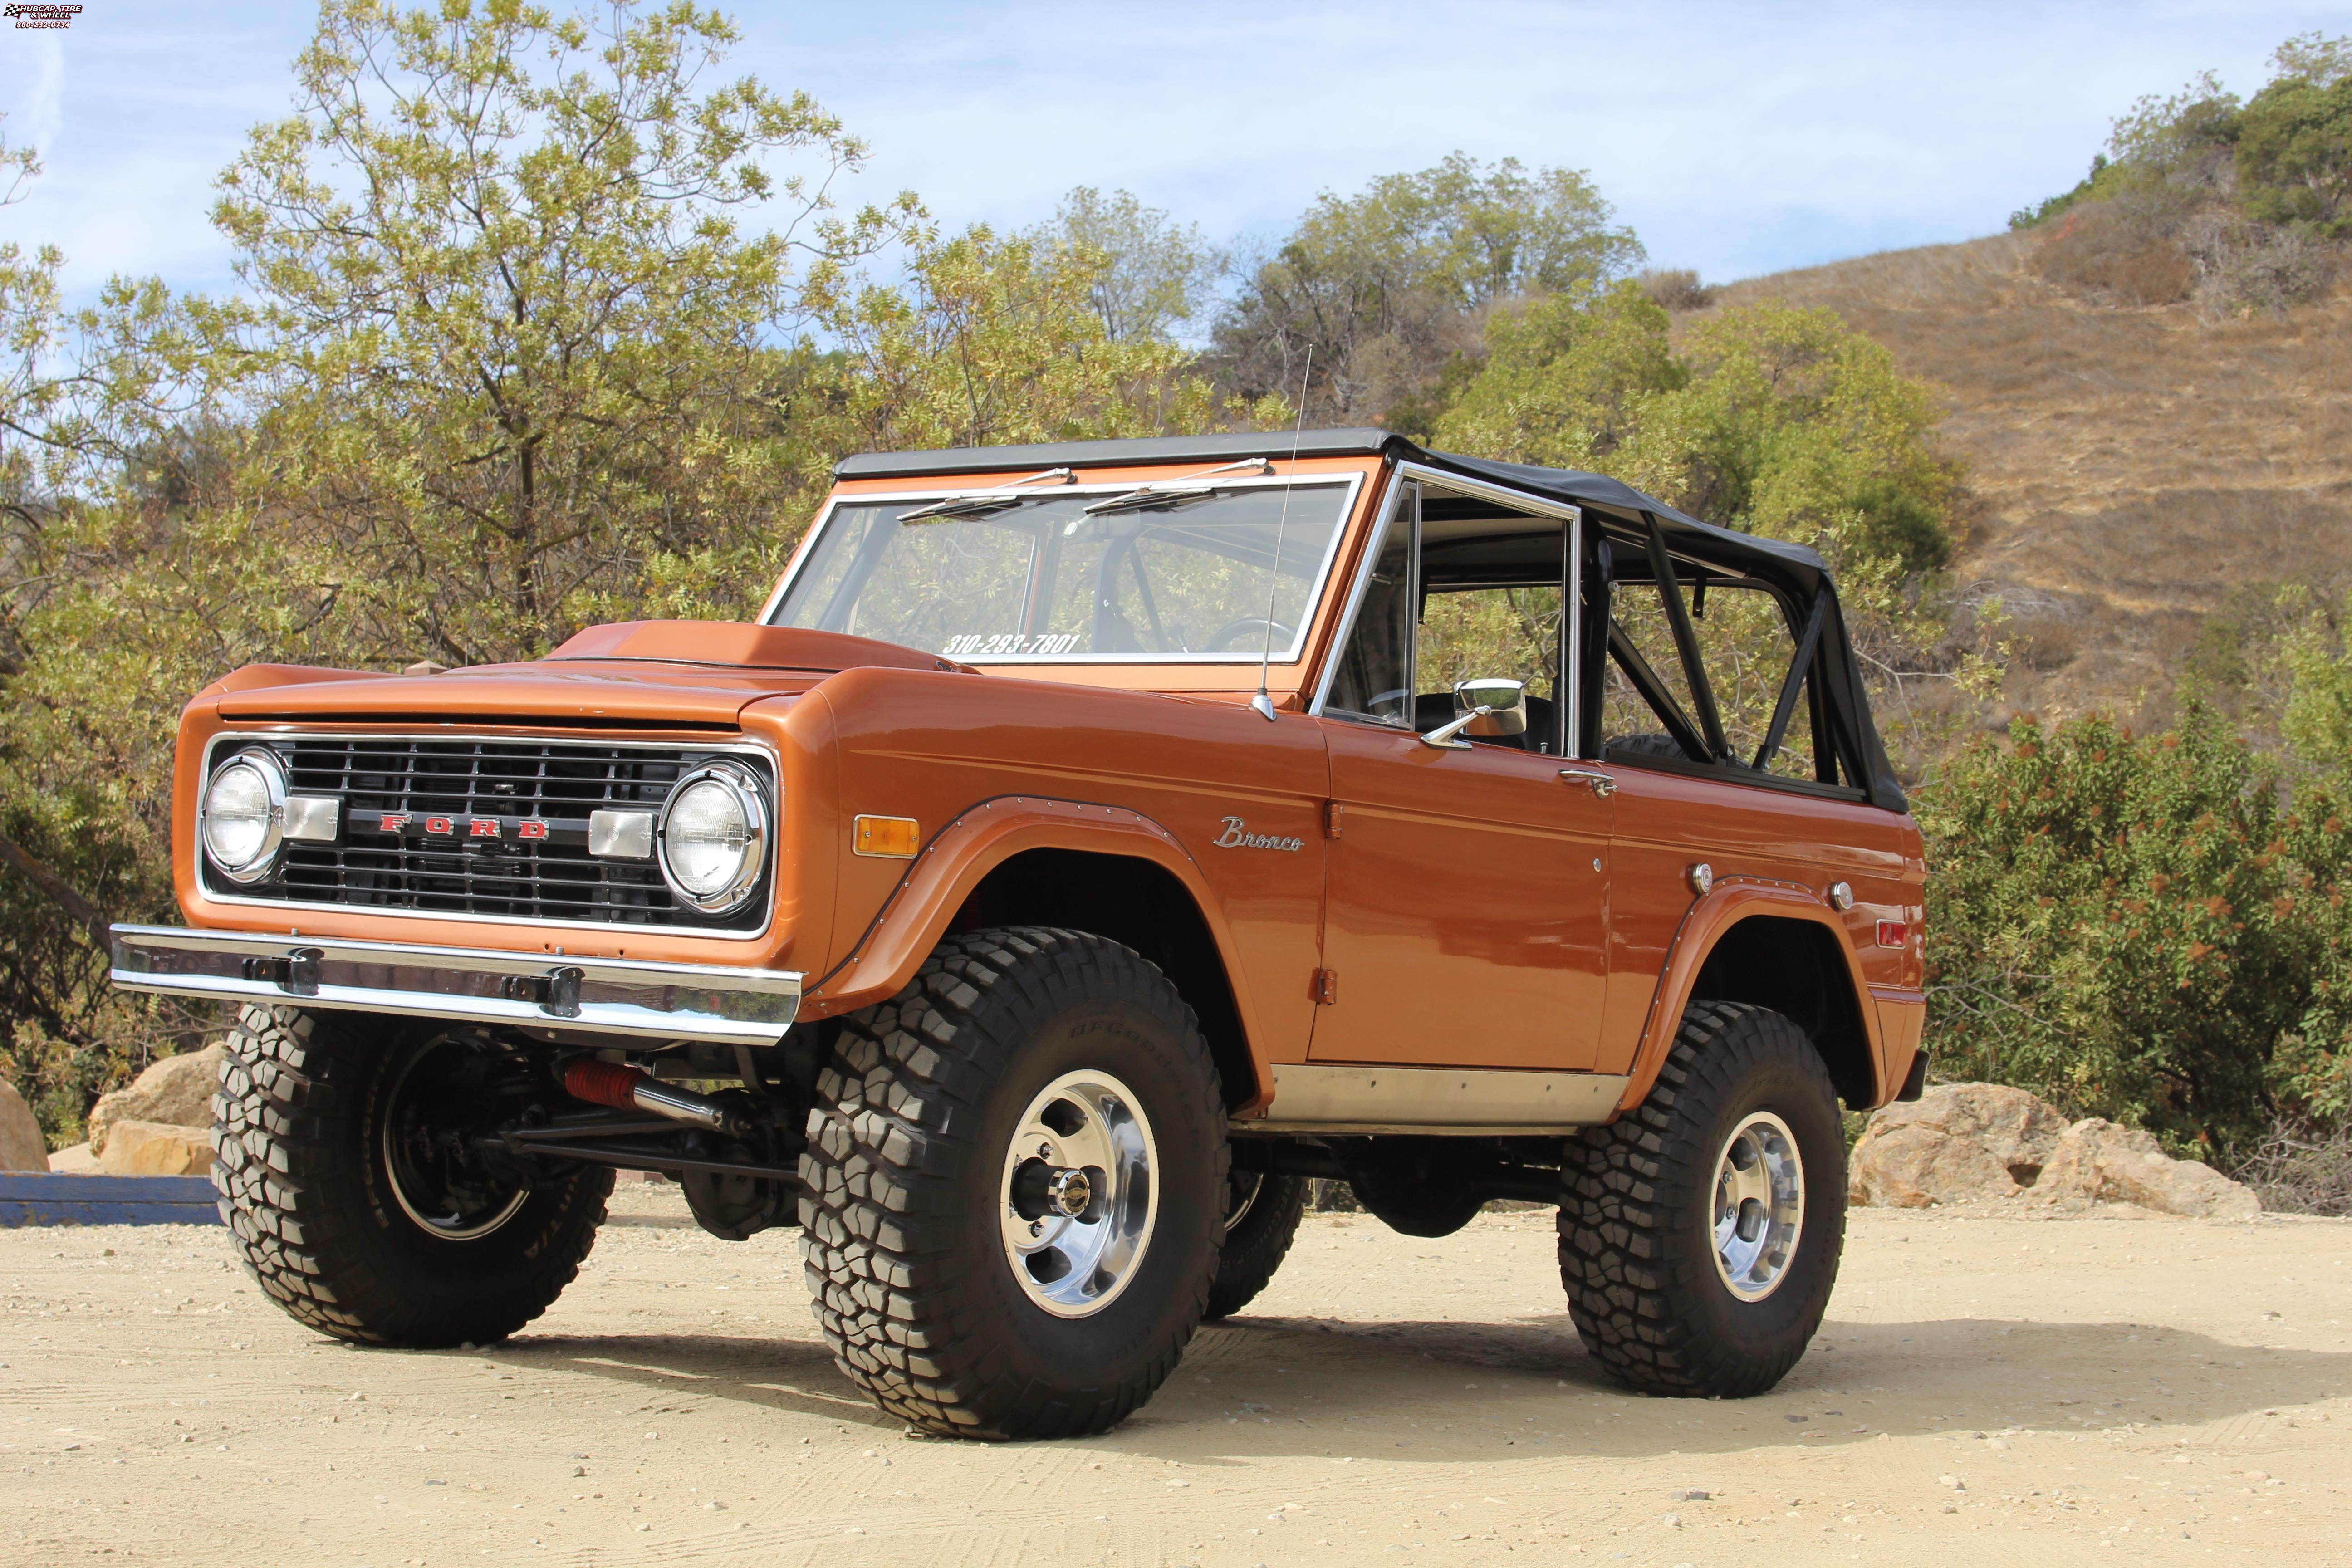 Ford bronco us mags indy u101 truck 15x9 polished wheels and rims